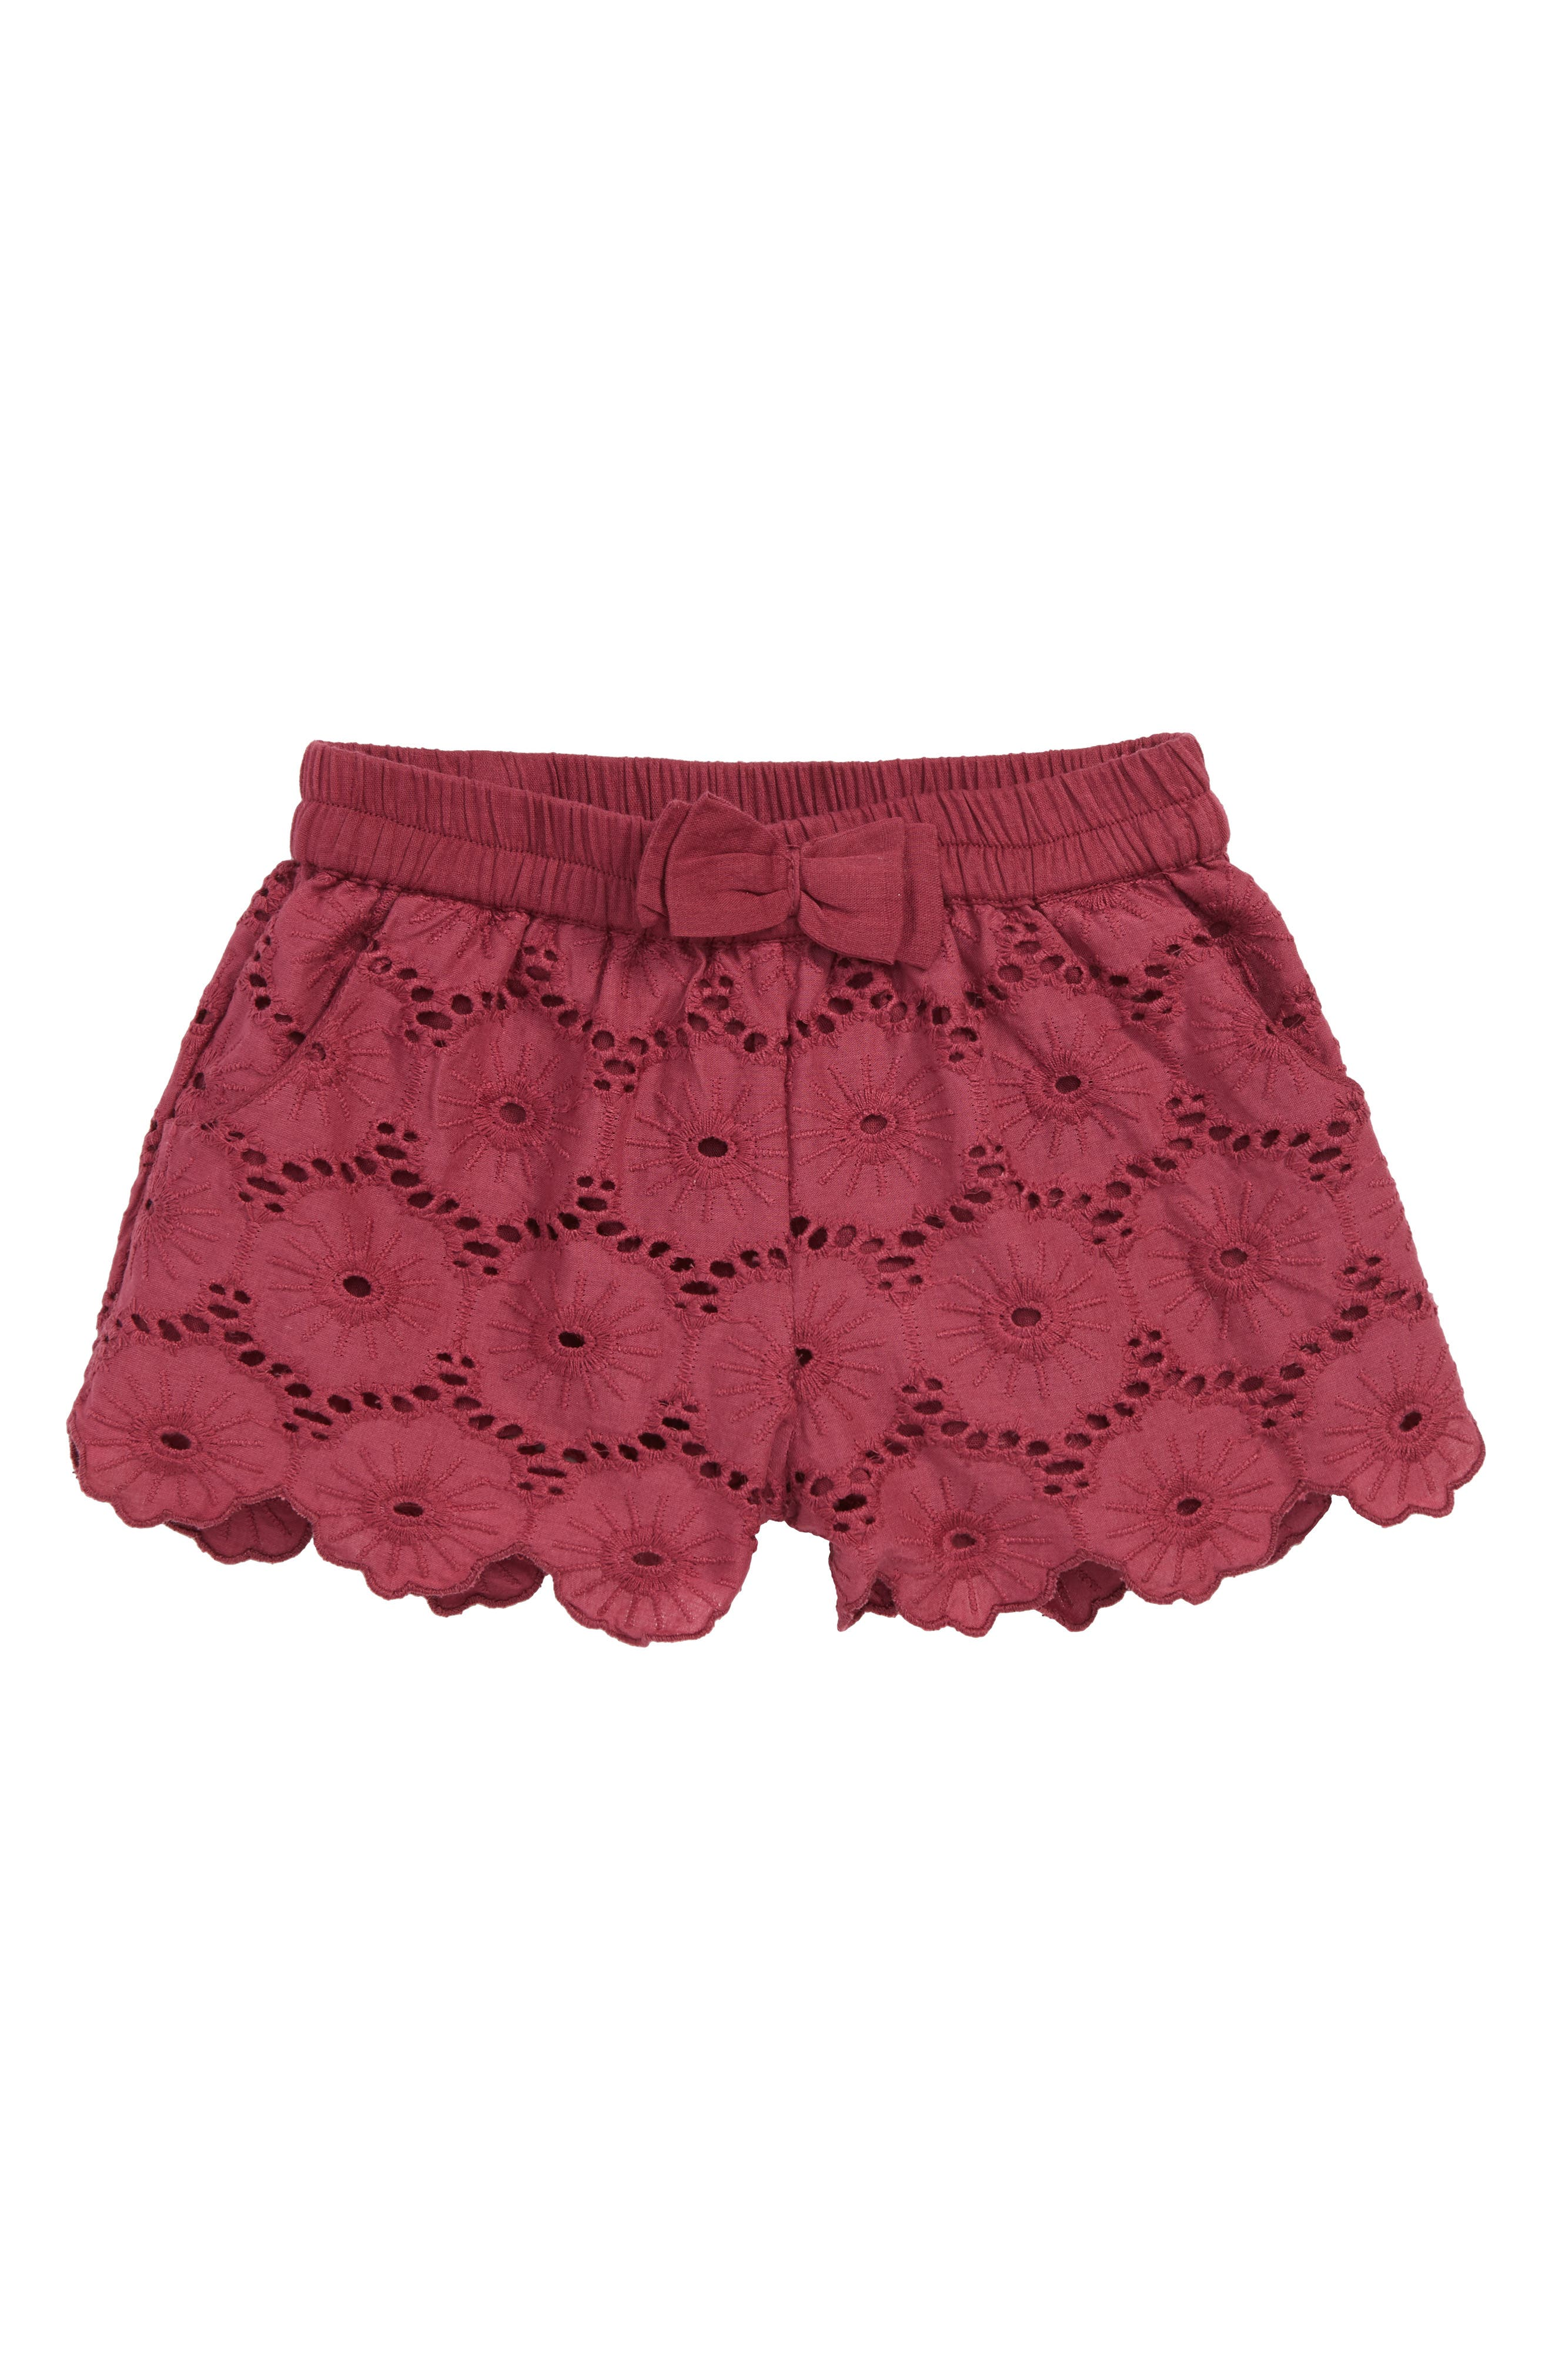 Christy Eyelet Embroidered Shorts,                         Main,                         color, Maroon